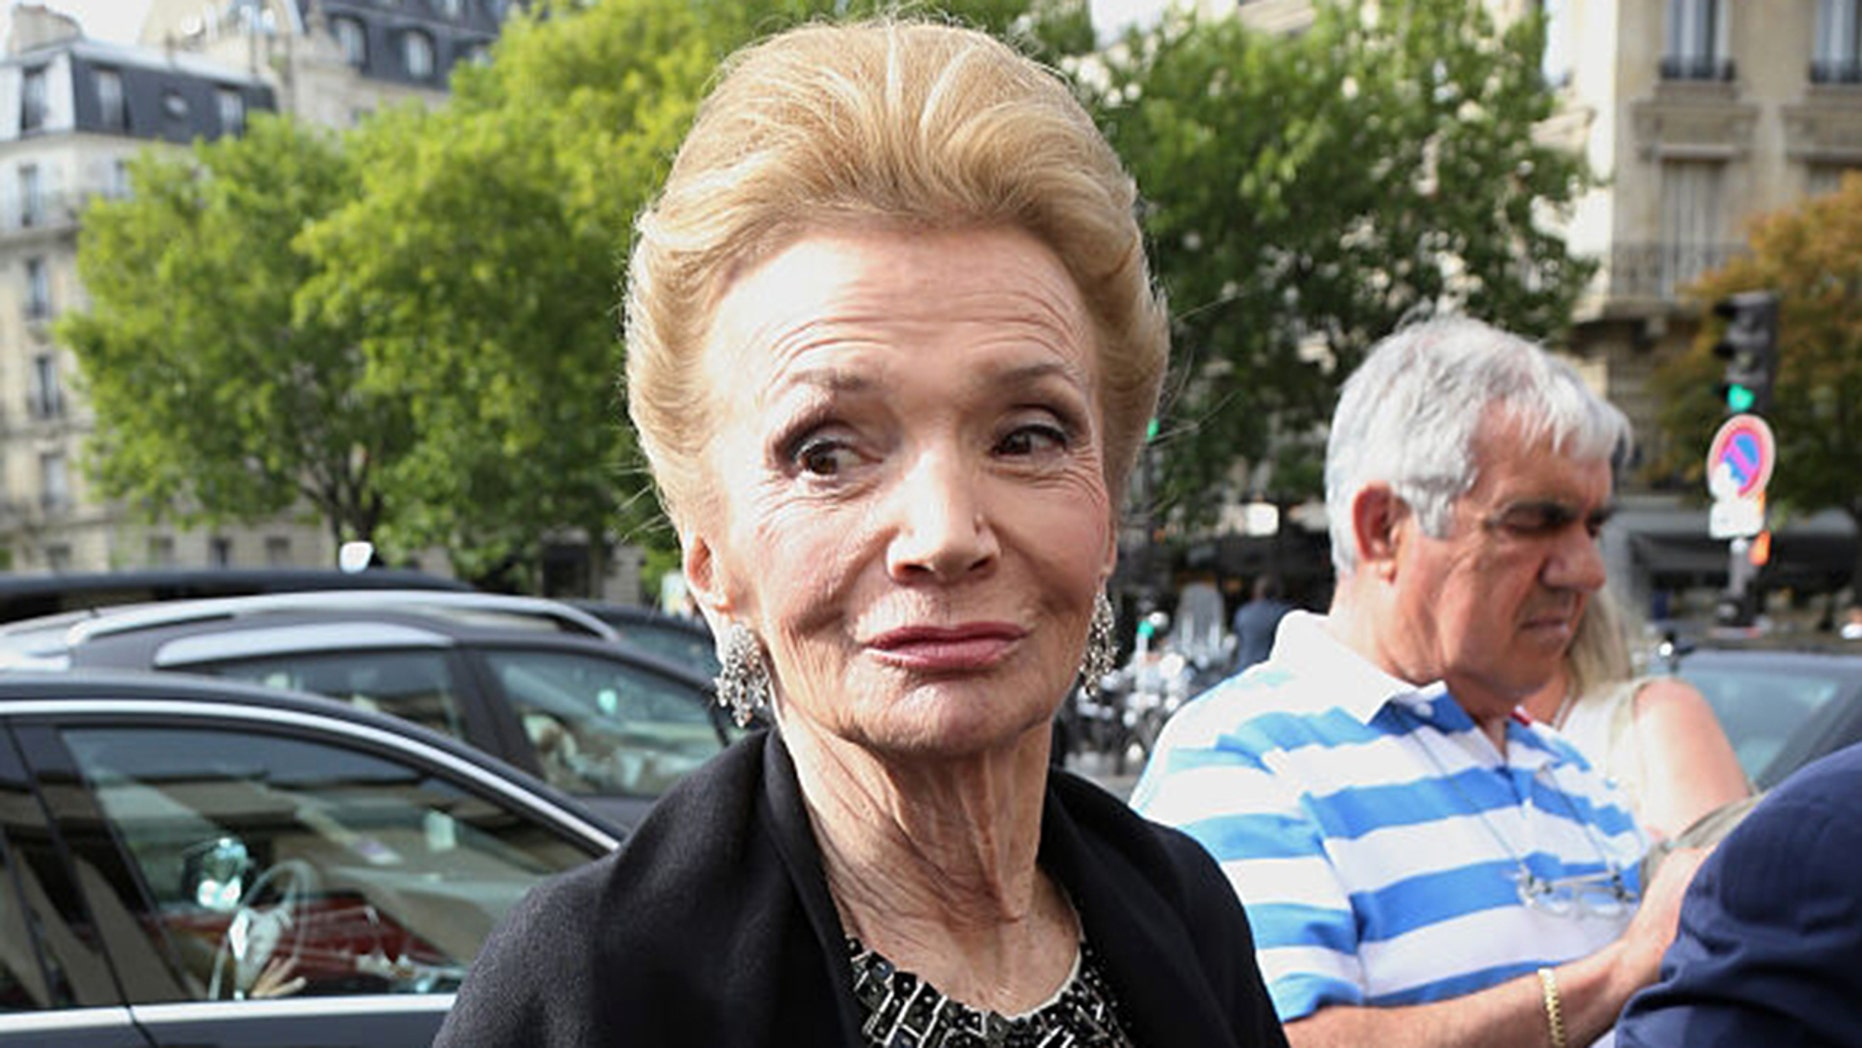 Style icon and life-long socialite Lee Radziwill,the younger sister of Jackie Kennedy Onassis, has died at the age of 85